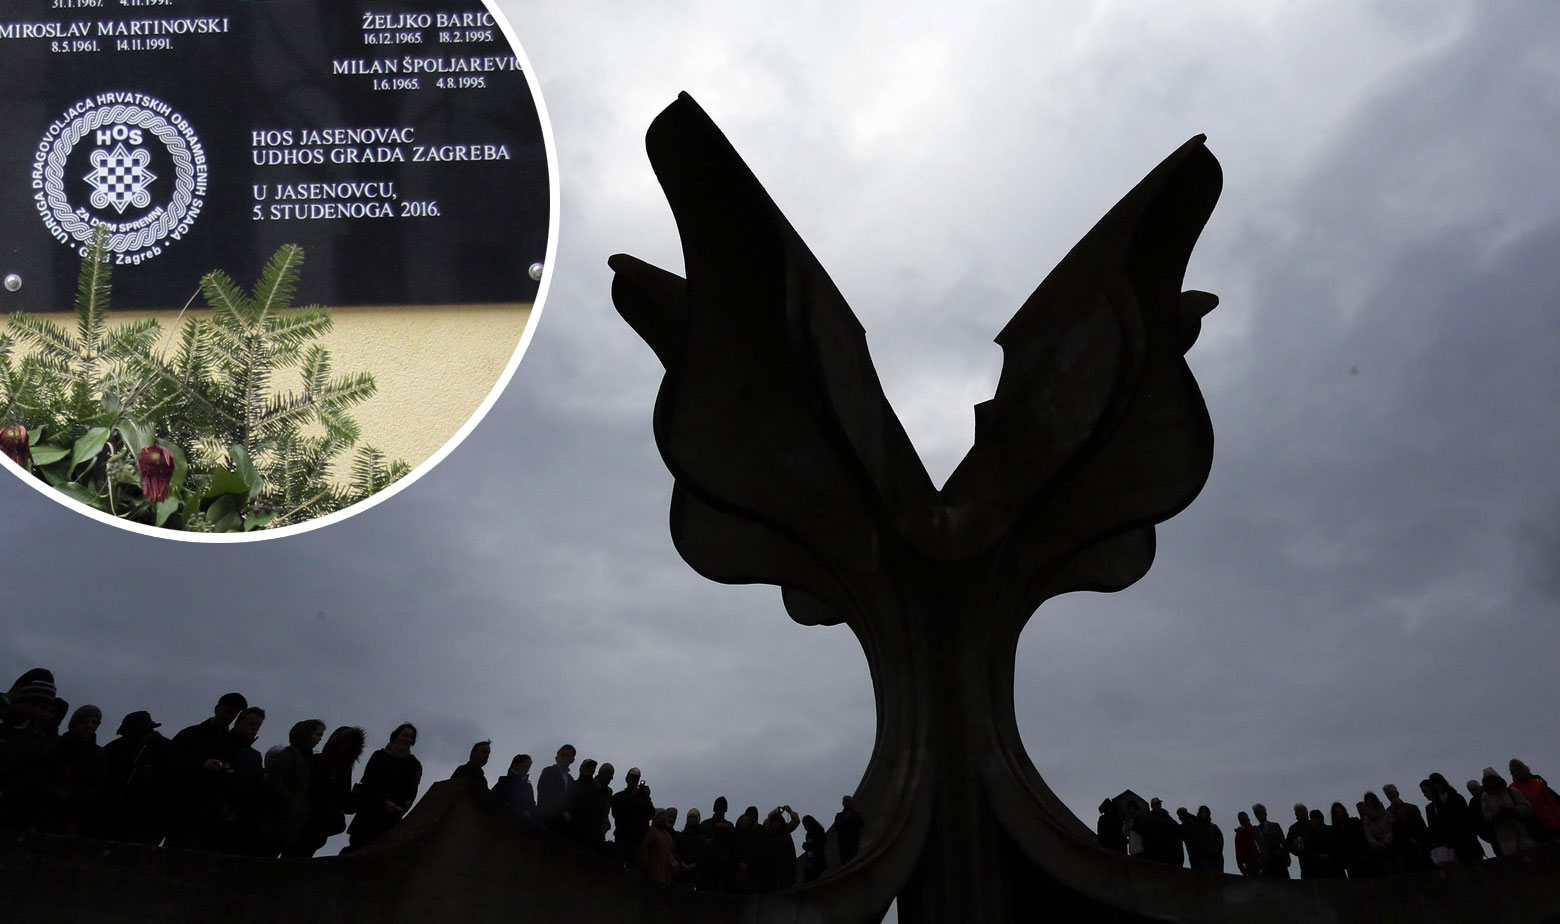 Illustration: Commemorative plaque to fallen veterans featuring Croatian Nazi salute (circle), which was until 2018 placed near WWII-era concentration camp Jasenovac